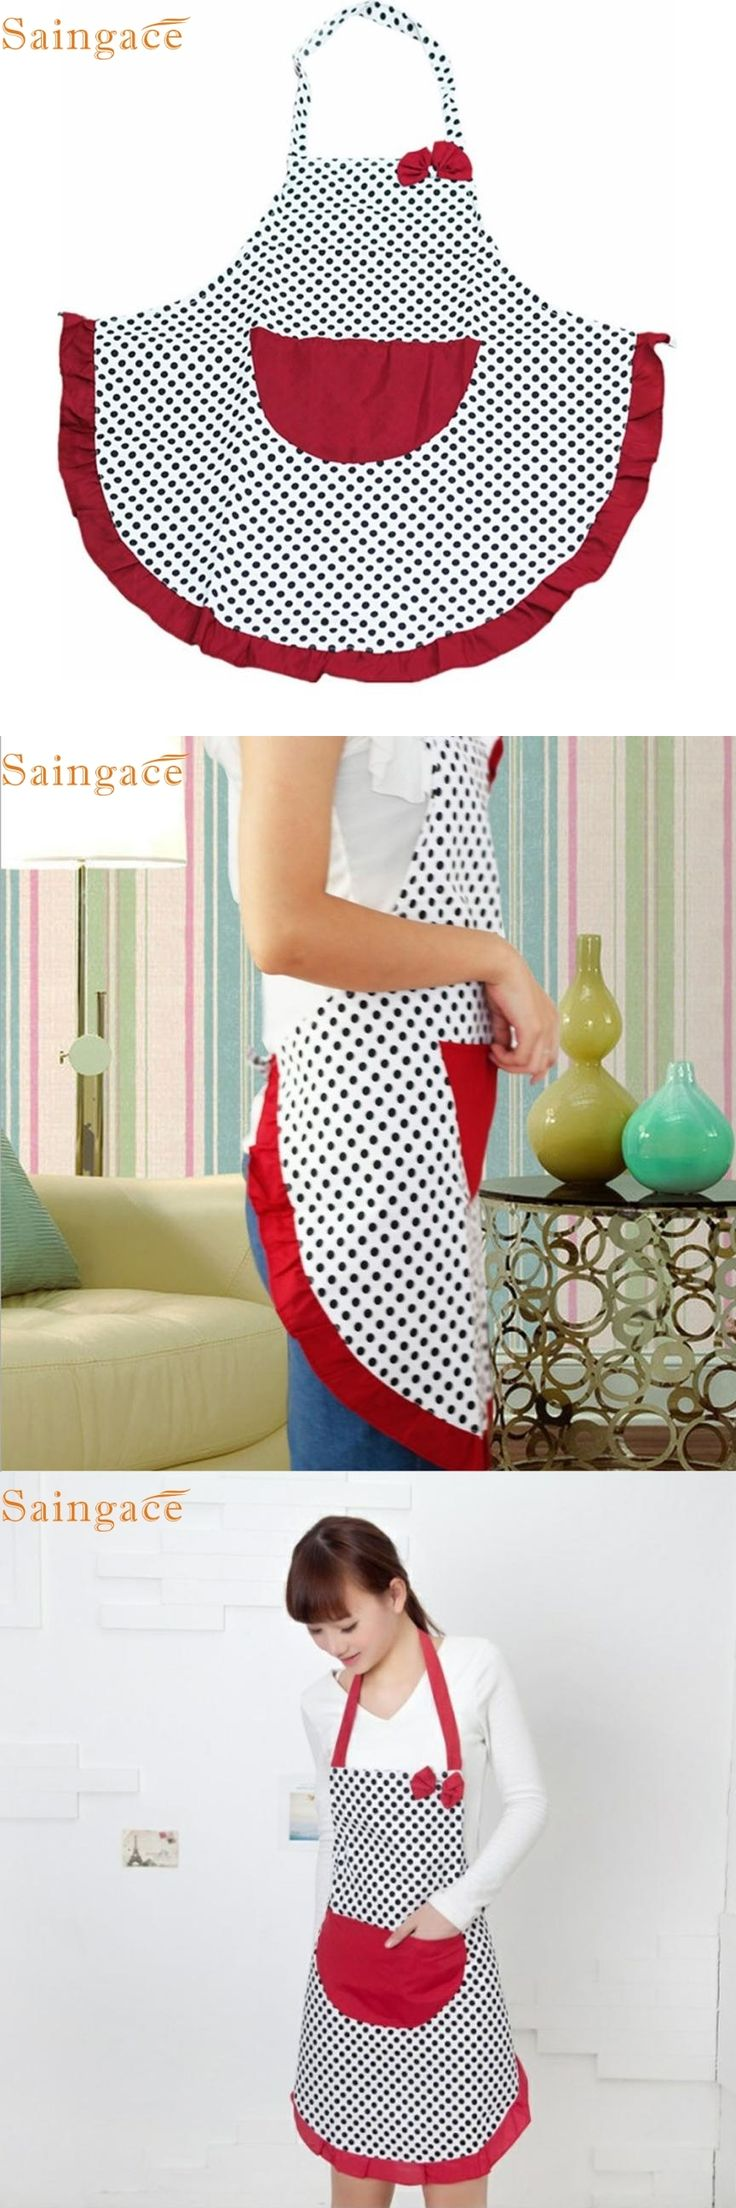 Mosunx Business  women Bib Cooking Aprons  Kitchen Restaurant Aprons Polka Dot Aprons